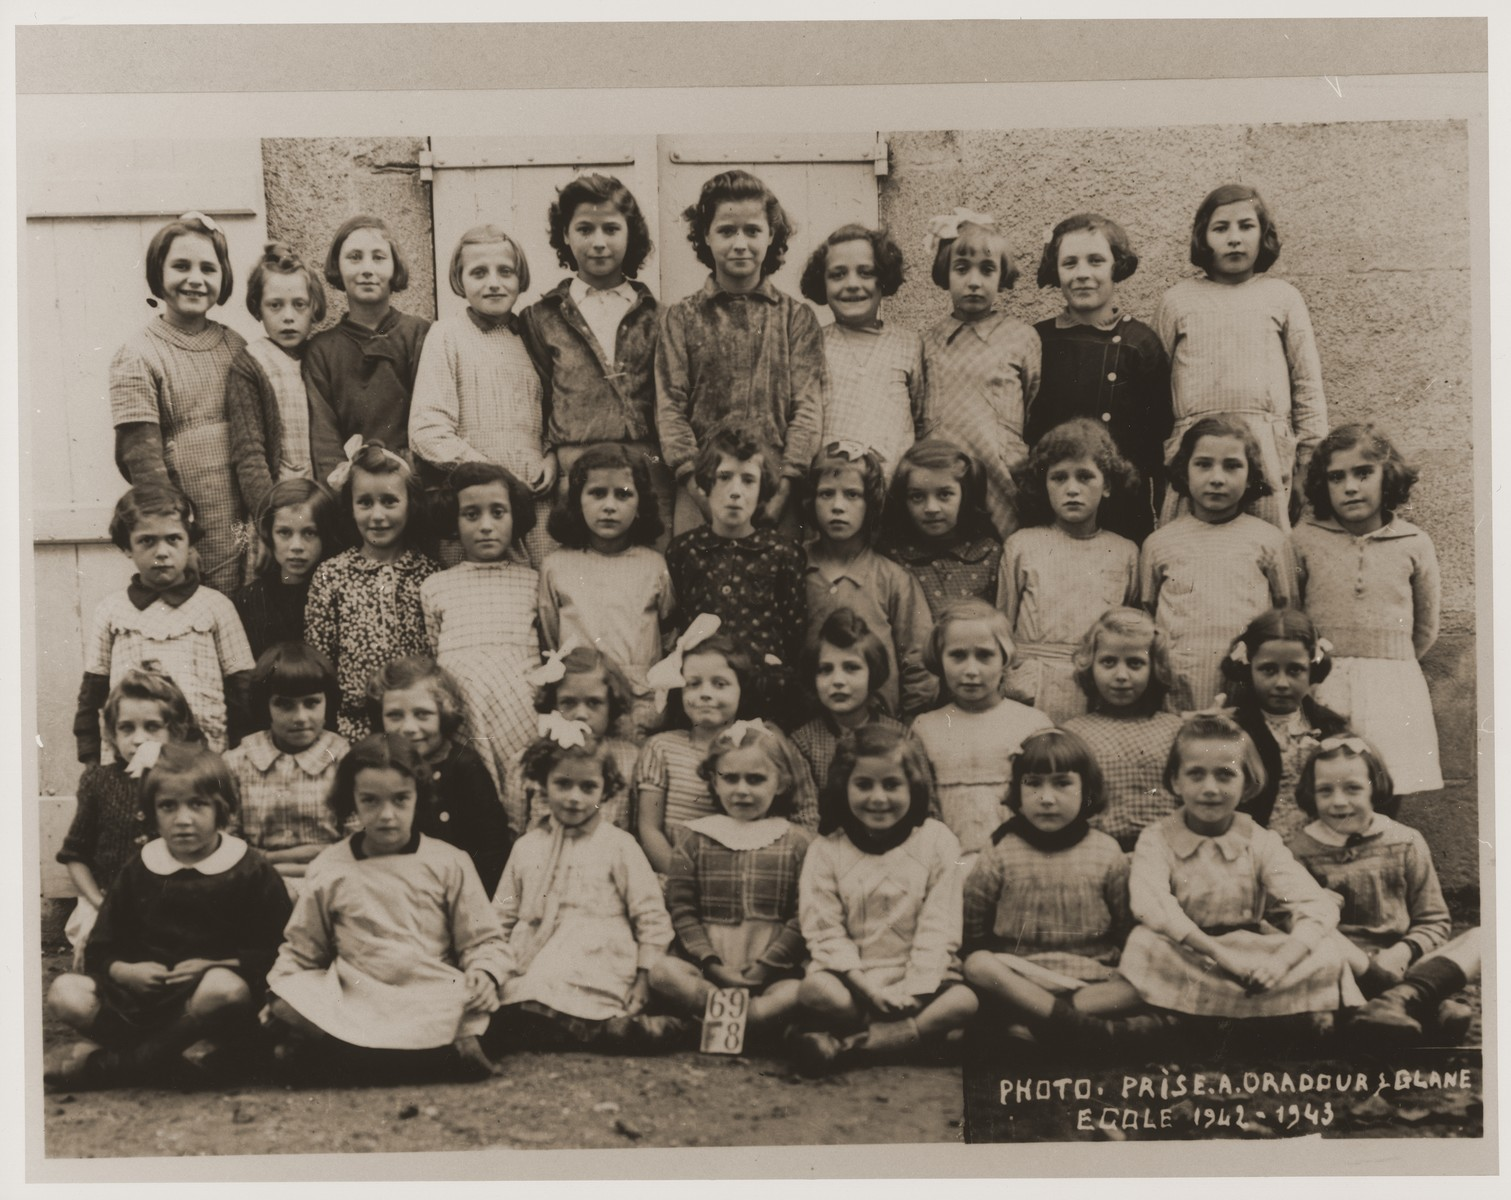 A group portrait of a class of girls at a school in Oradour.  All of the children pictured were killed by the SS during the June 10, 1944 massacre.